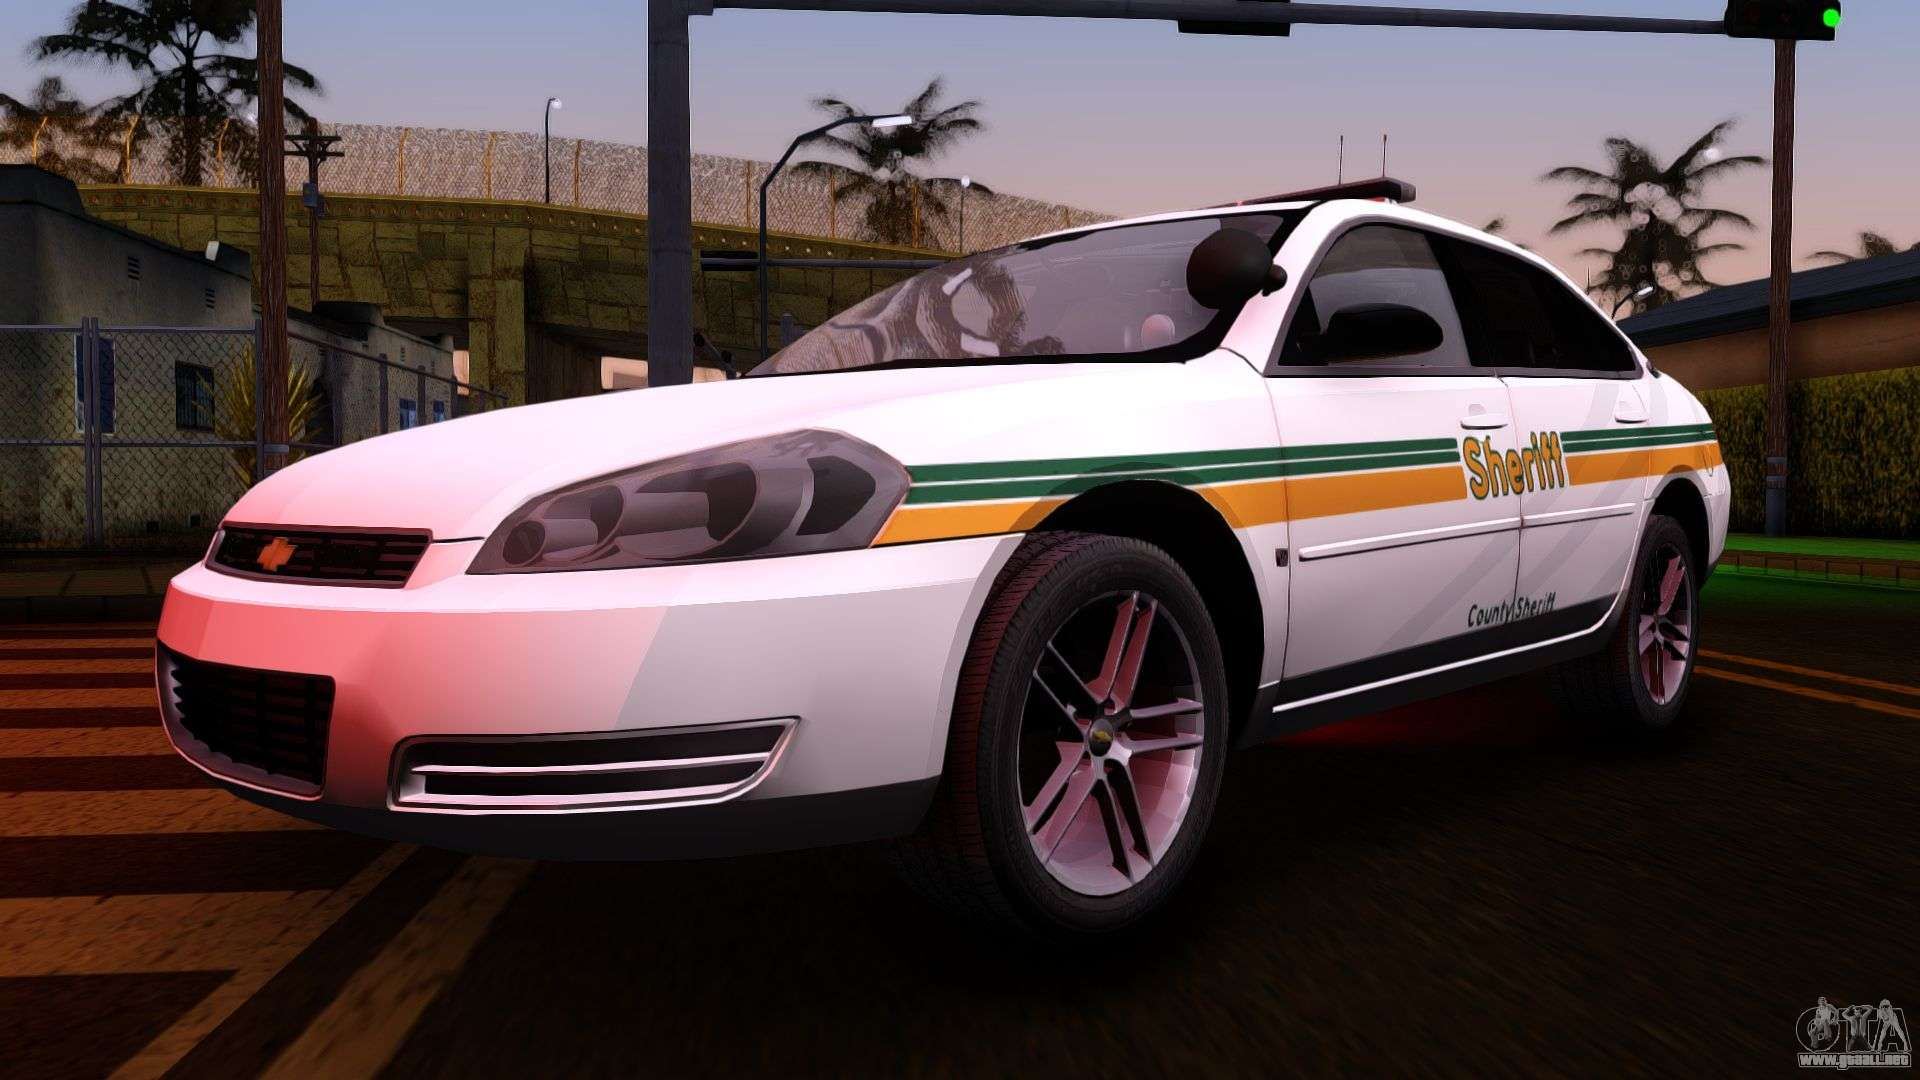 2008 chevrolet impala ltz county sheriff para gta san andreas. Black Bedroom Furniture Sets. Home Design Ideas